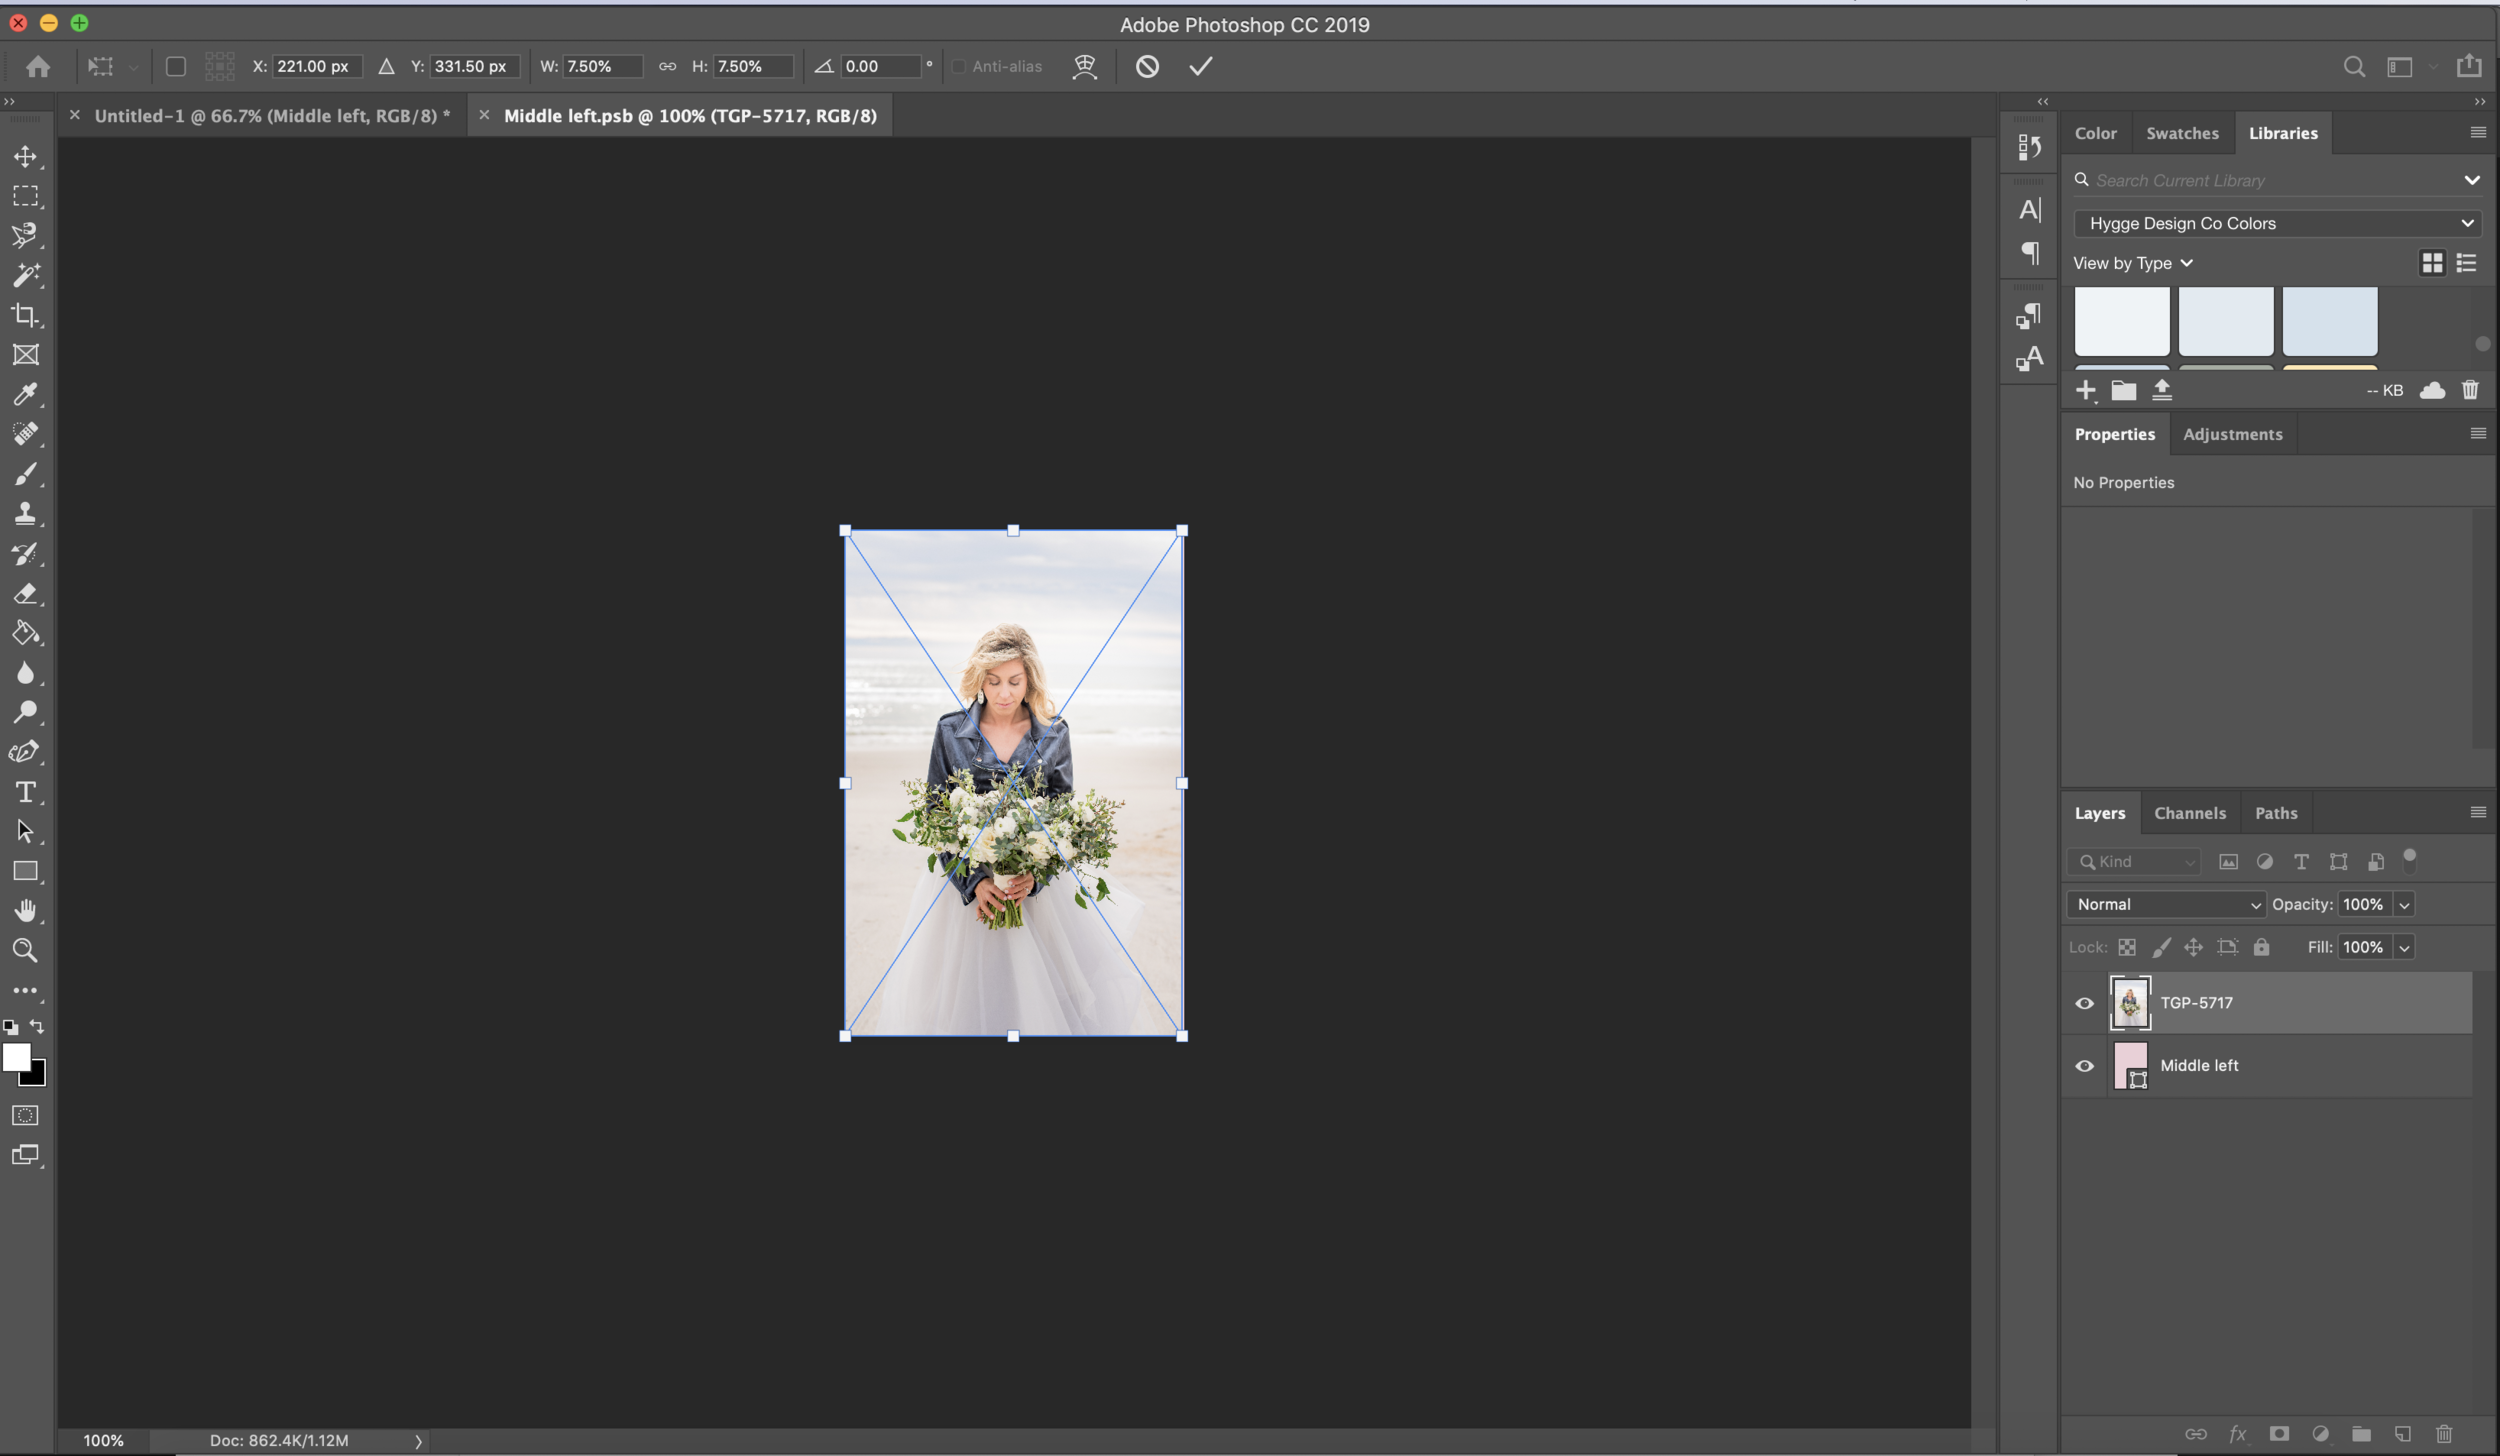 Placing a smart object image